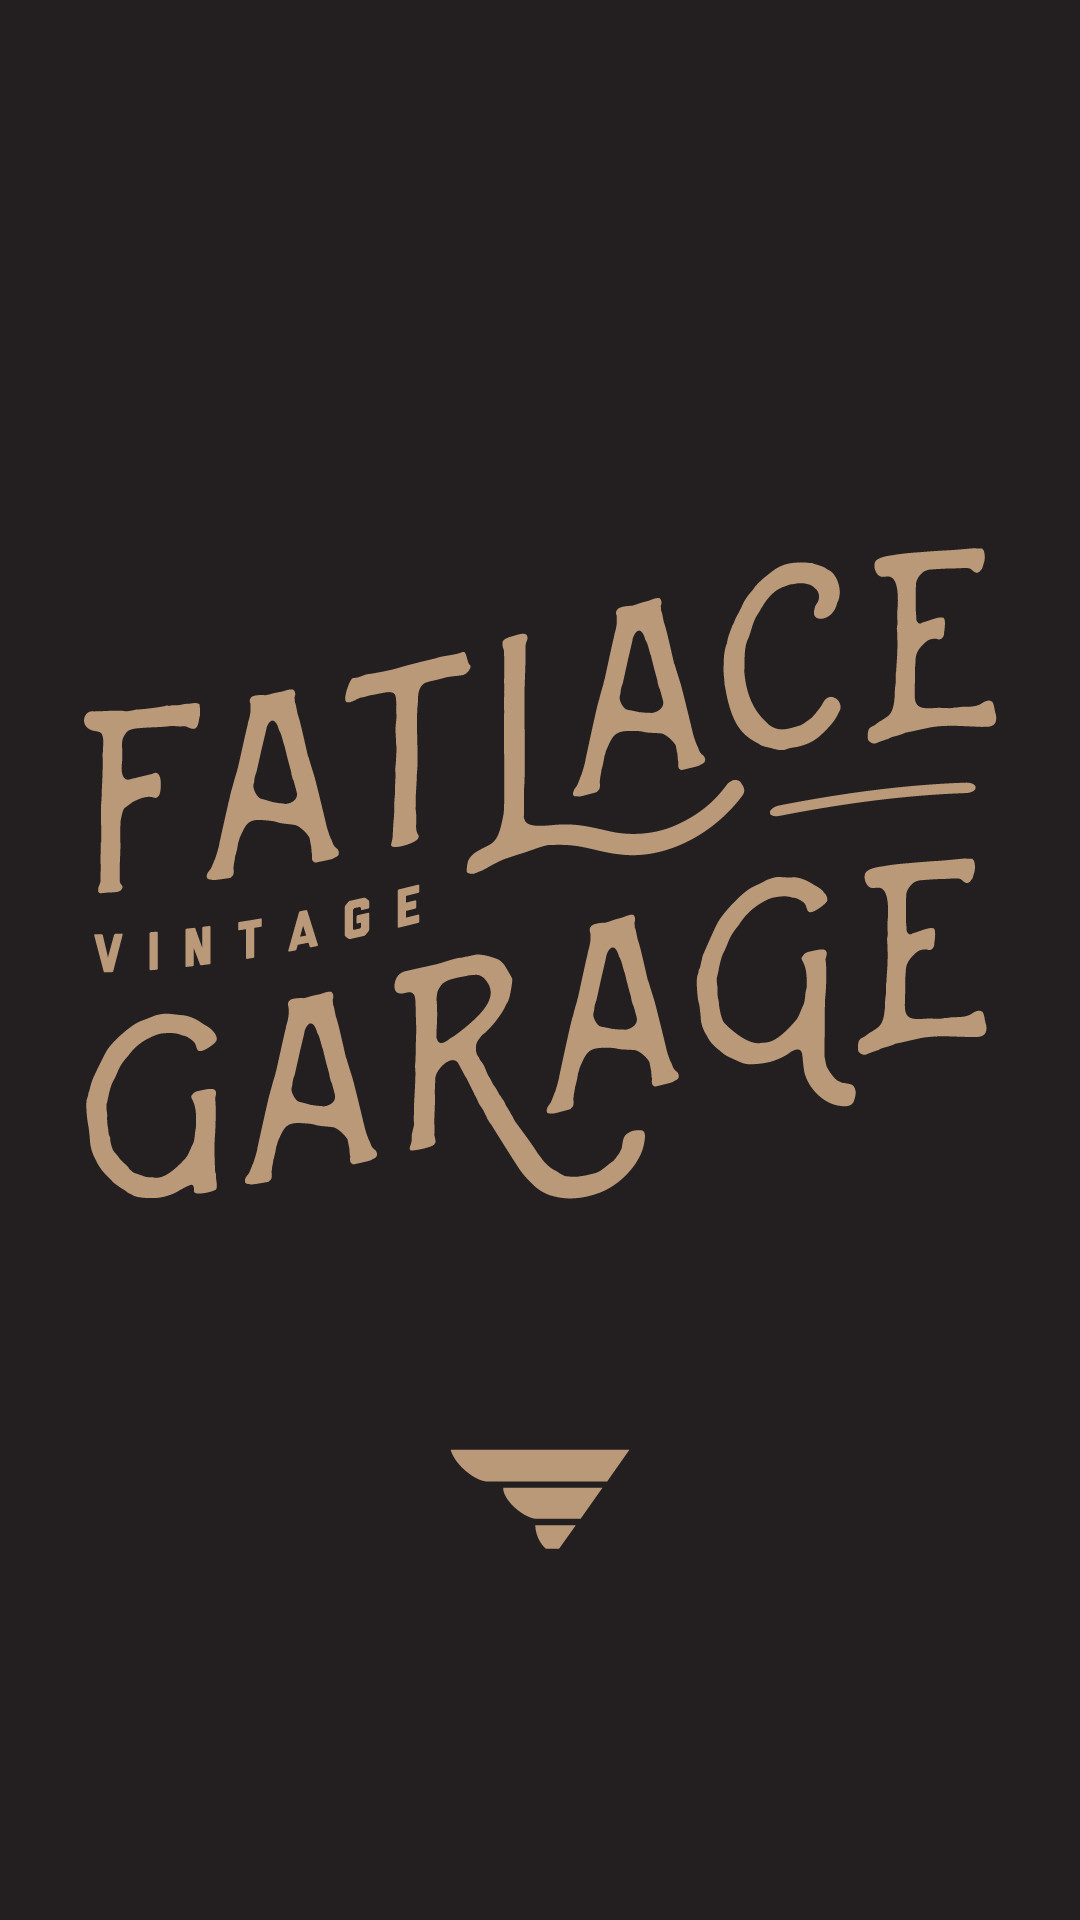 1080x1920 Wallpaper Wednesday: Fatlace Vintage Garage